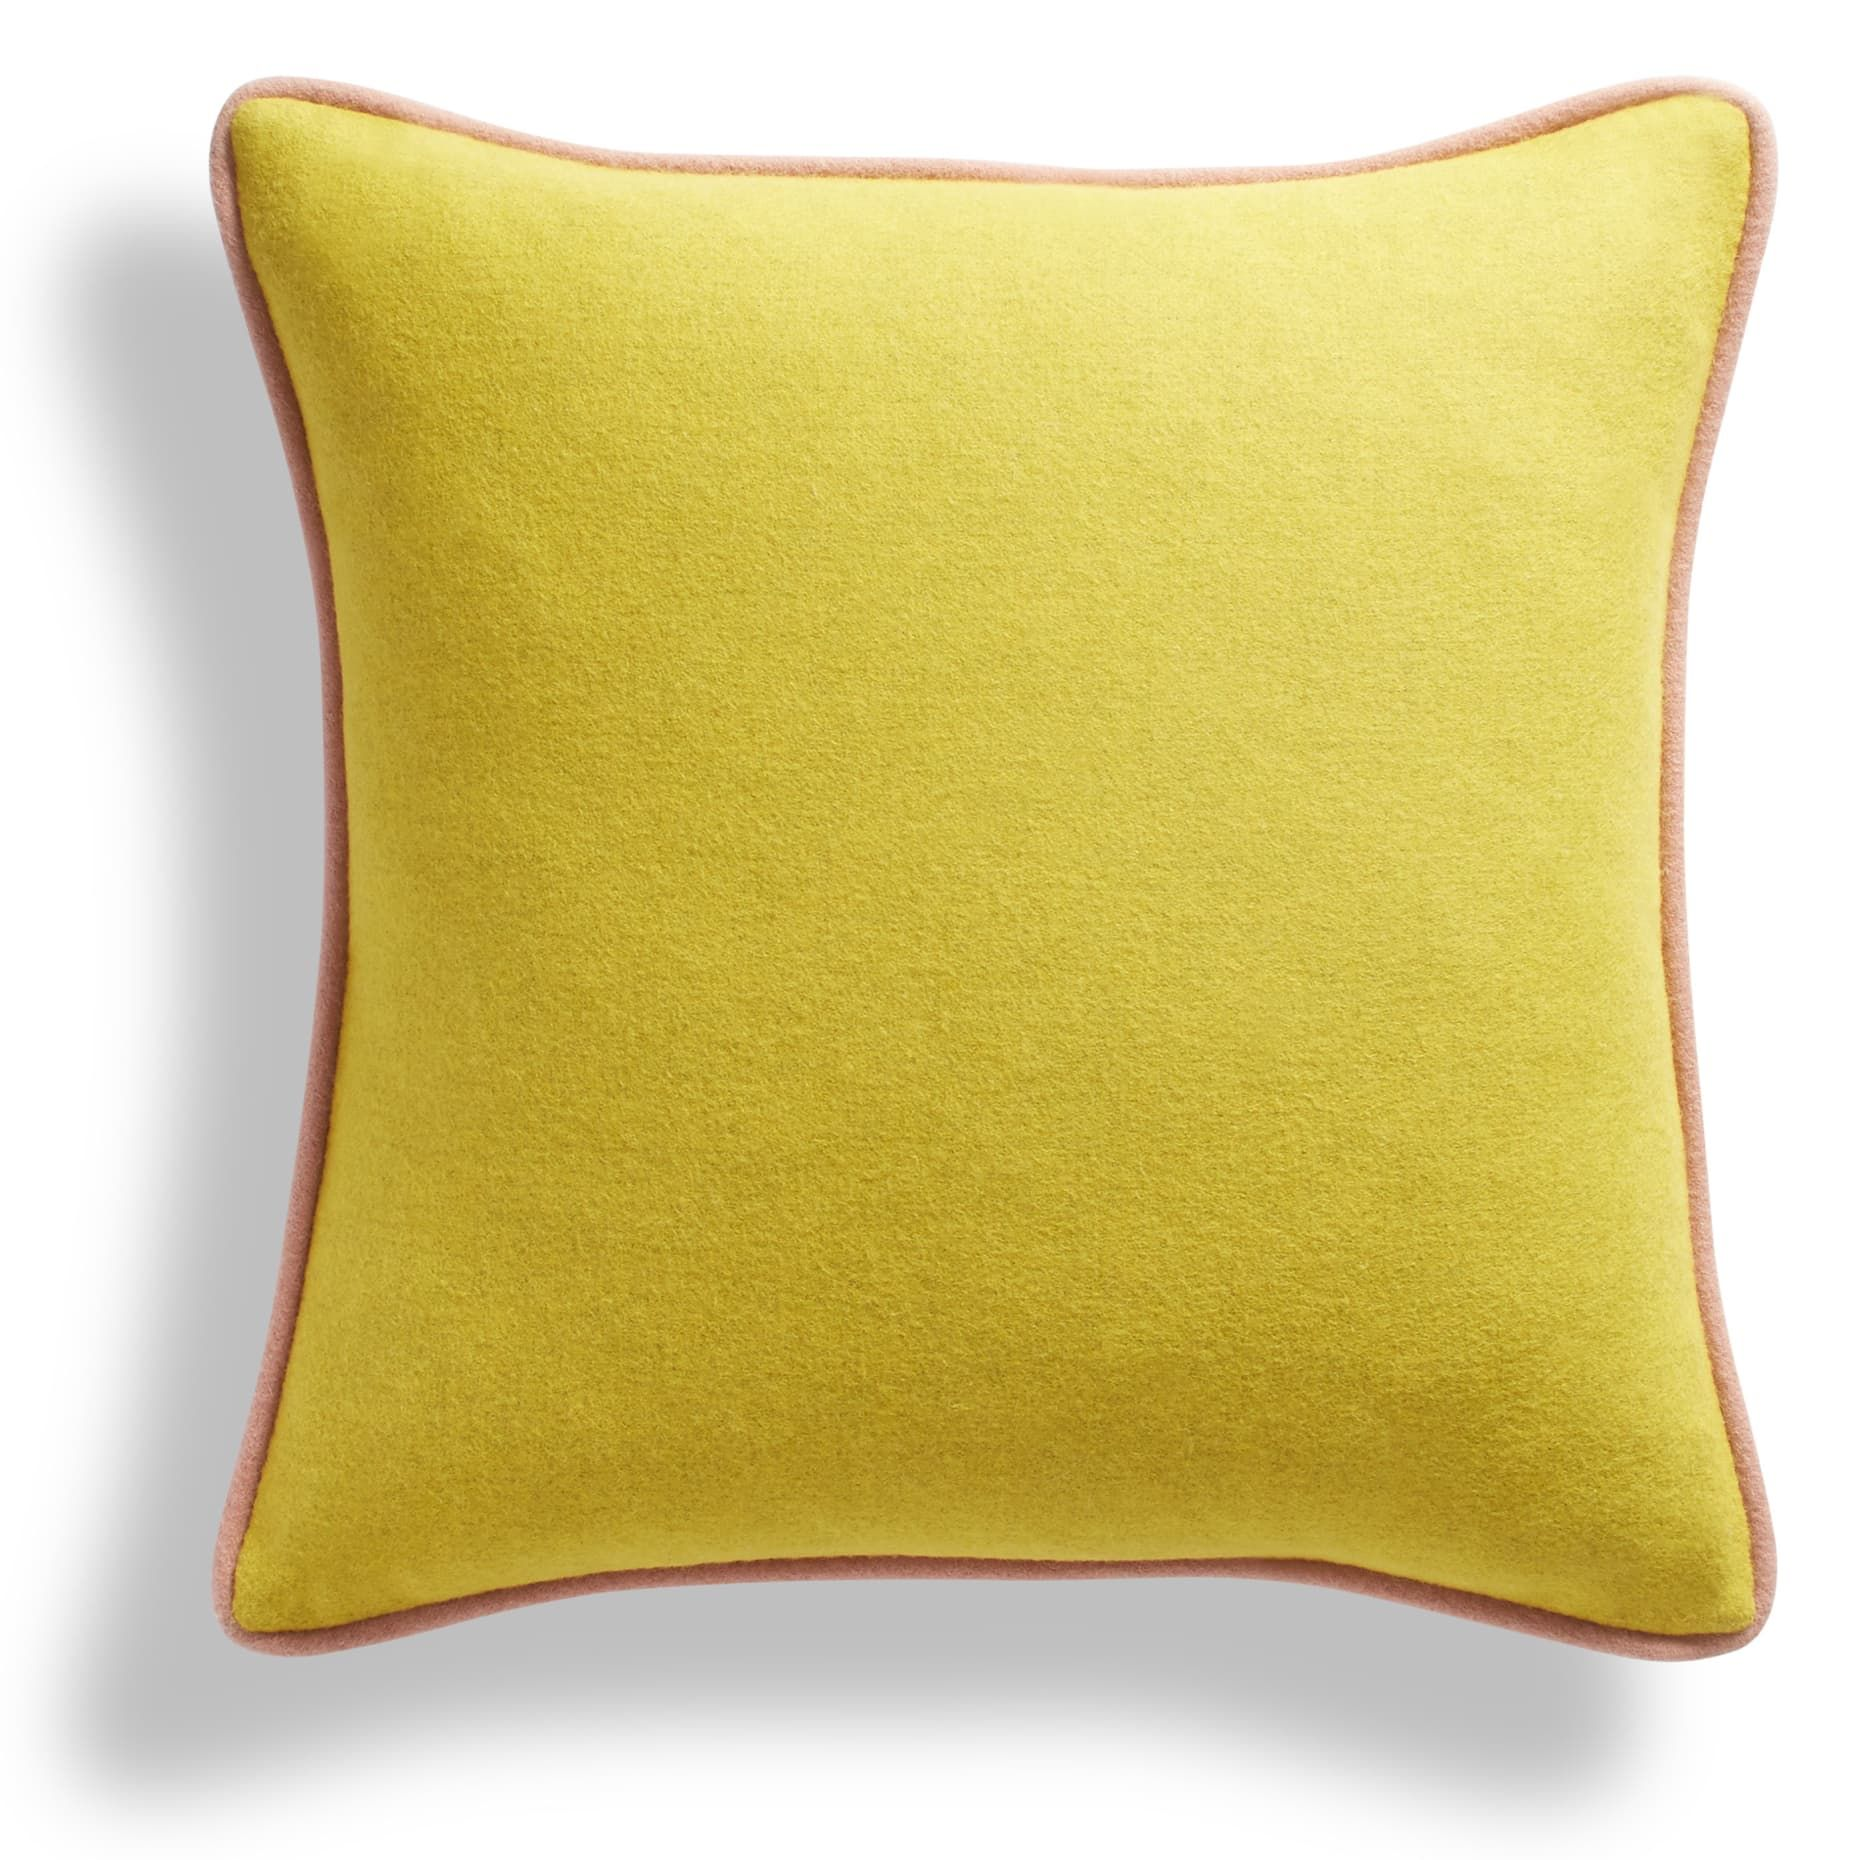 Outdoor Pillows Piped 20 in. Square